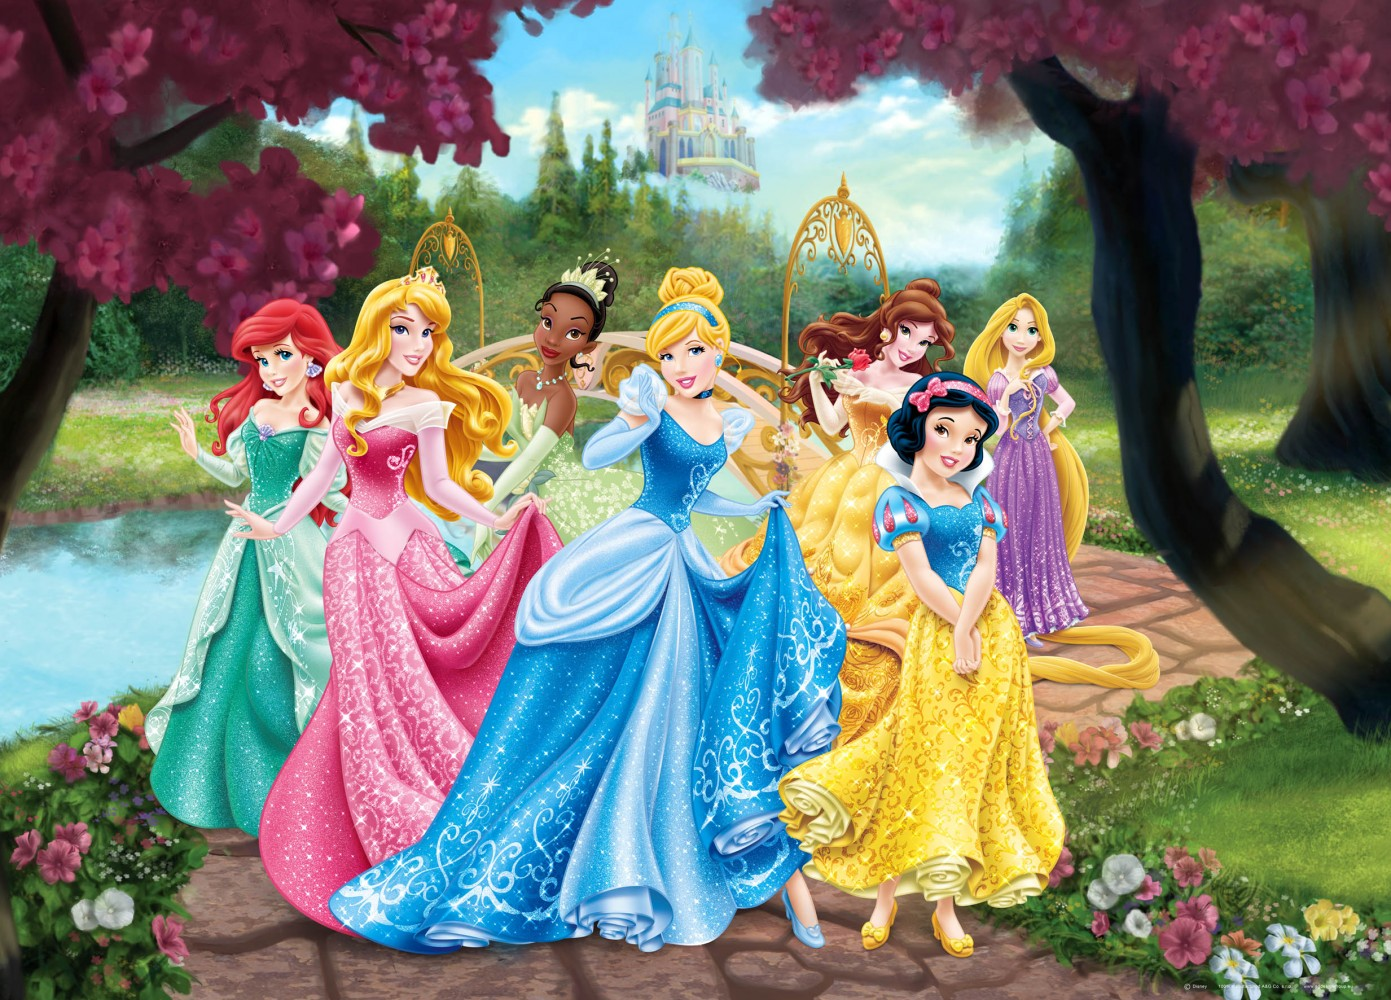 Xxl poster wall mural wallpaper disney princesses princess for Disney princess wallpaper mural